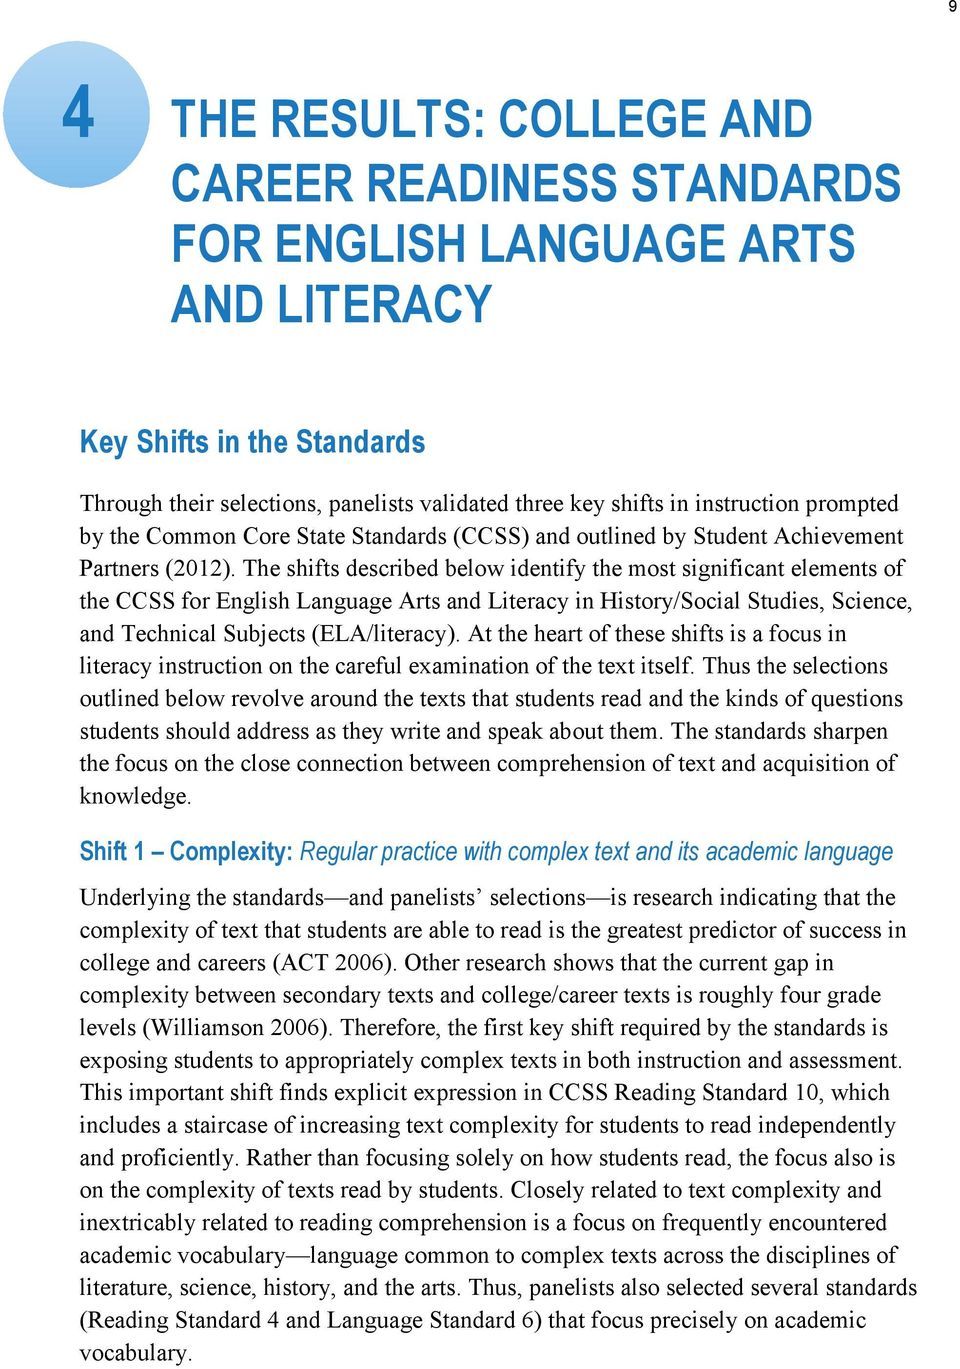 The shifts described below identify the most significant elements of the CCSS for English Language Arts and Literacy in History/Social Studies, Science, and Technical Subjects (ELA/literacy).